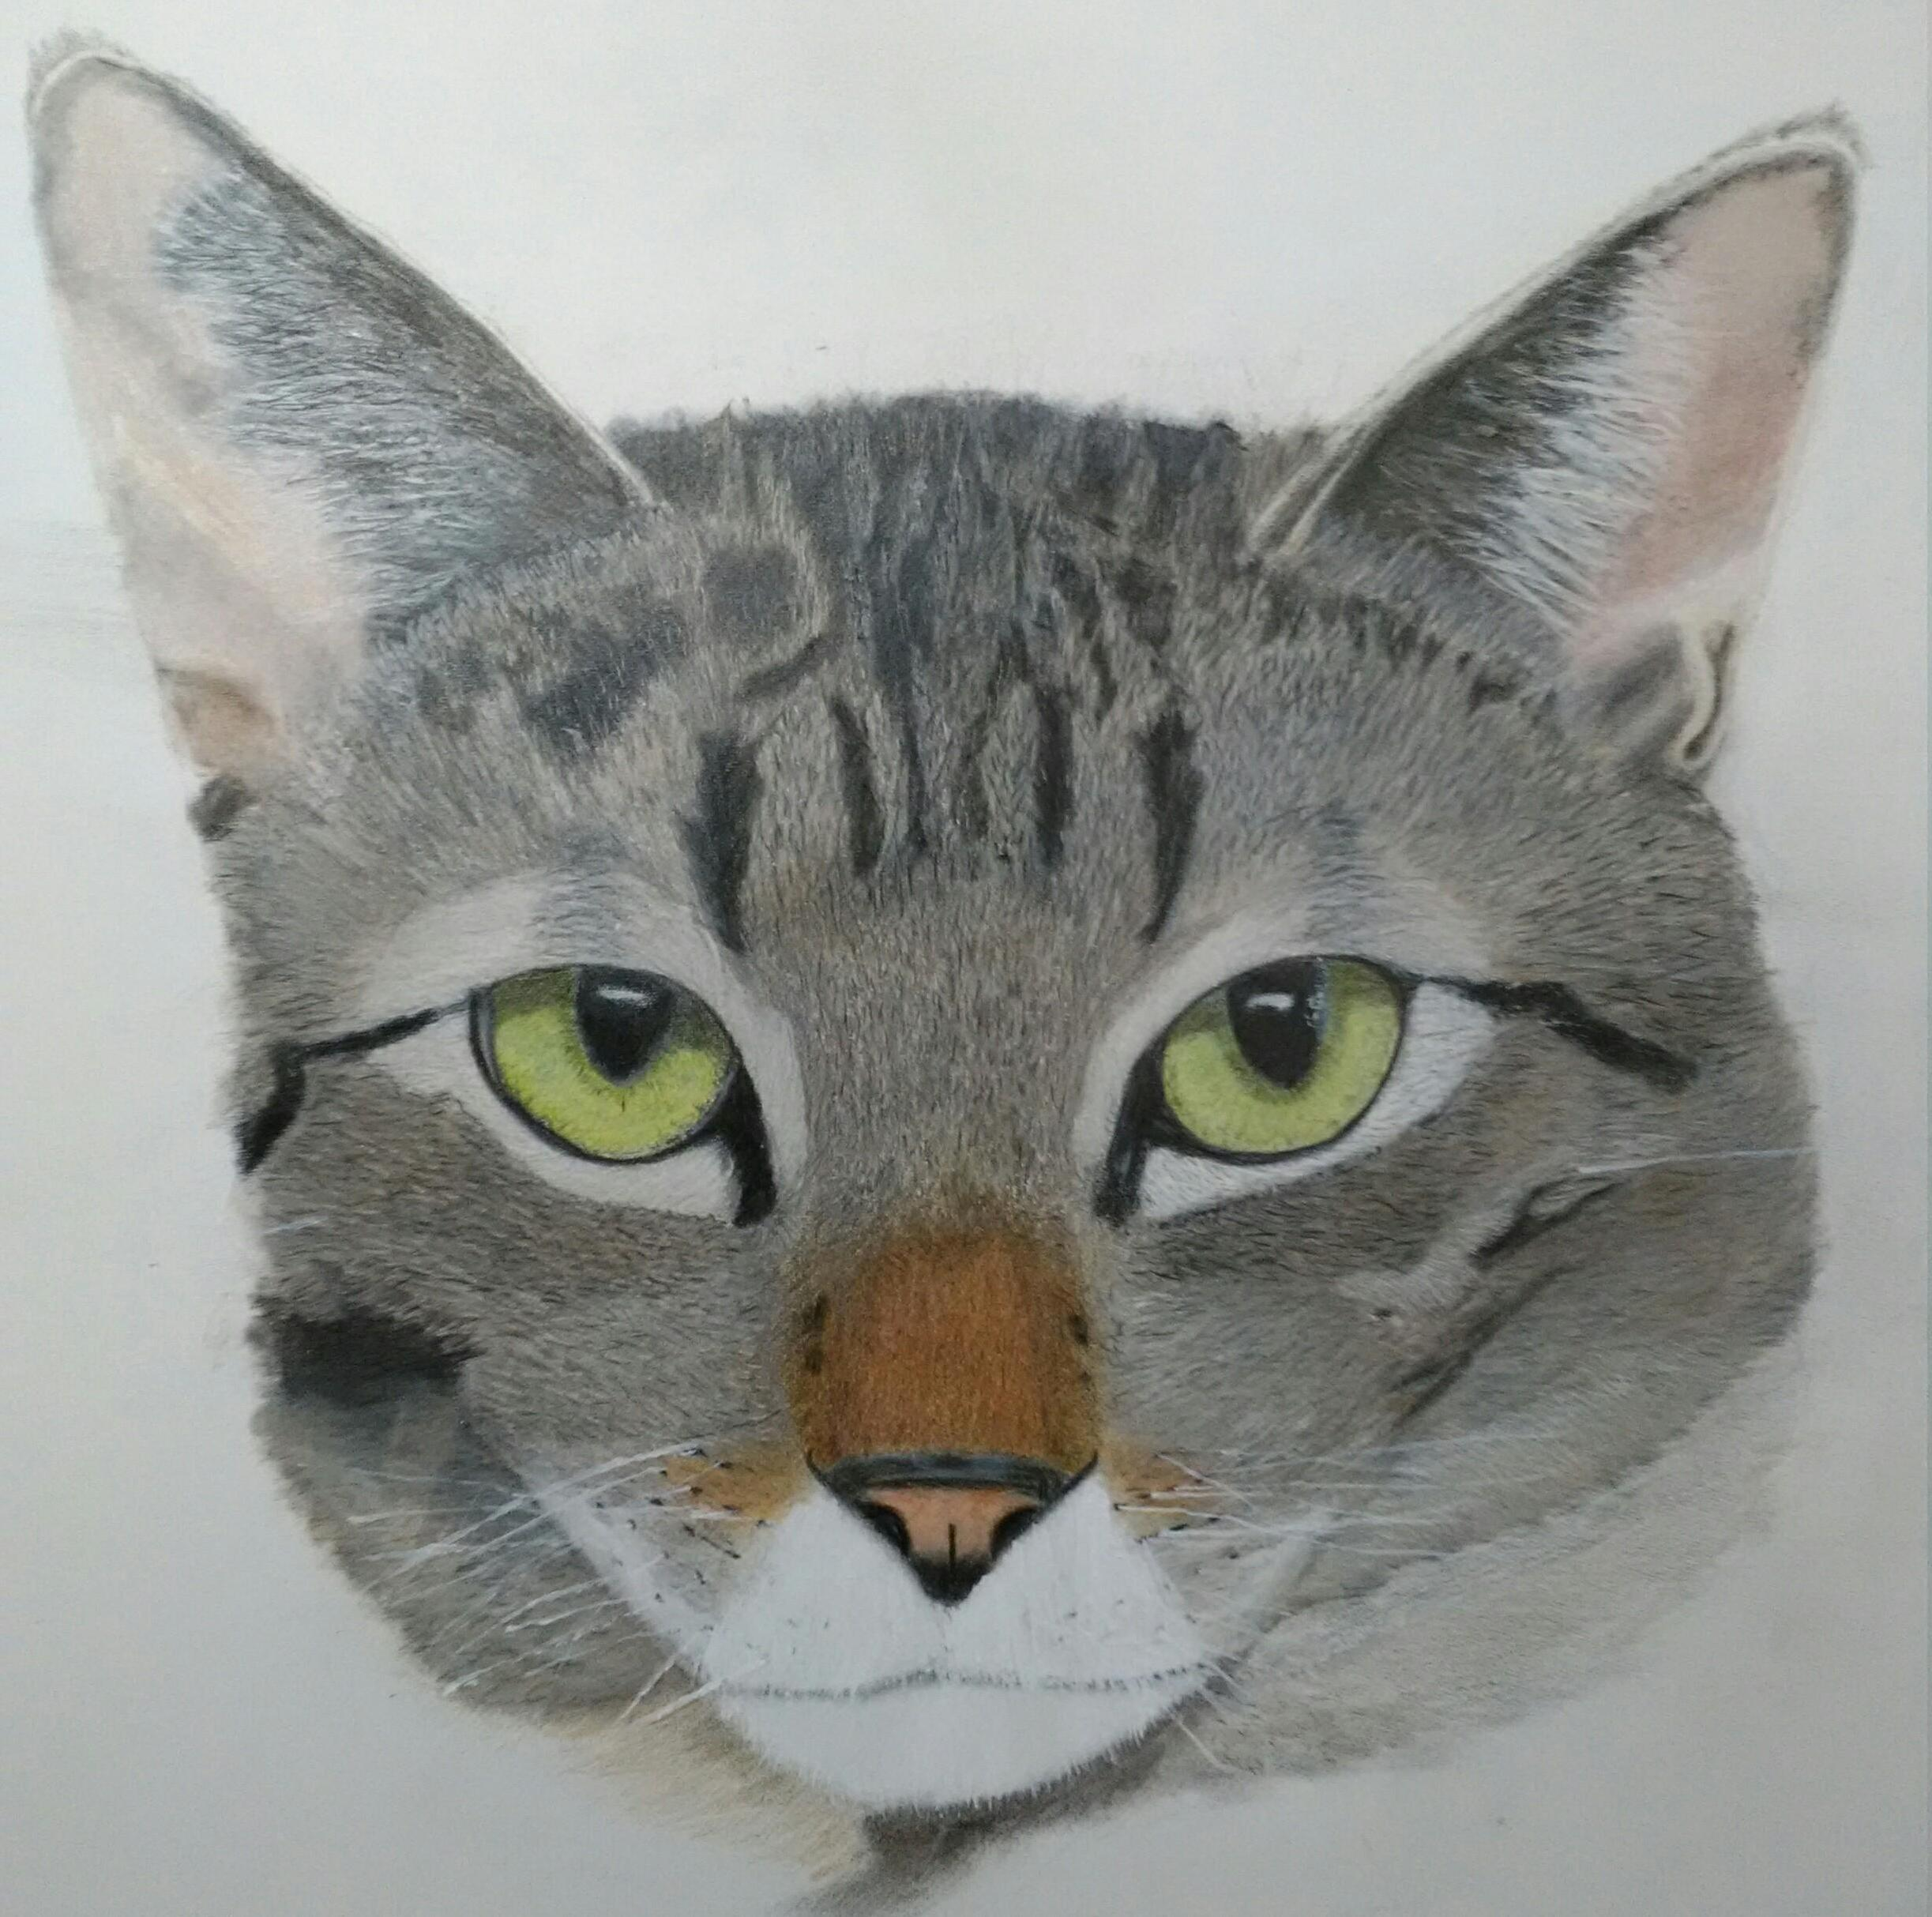 Gracie is finished…first drawing ever. tips or critiques welcome.